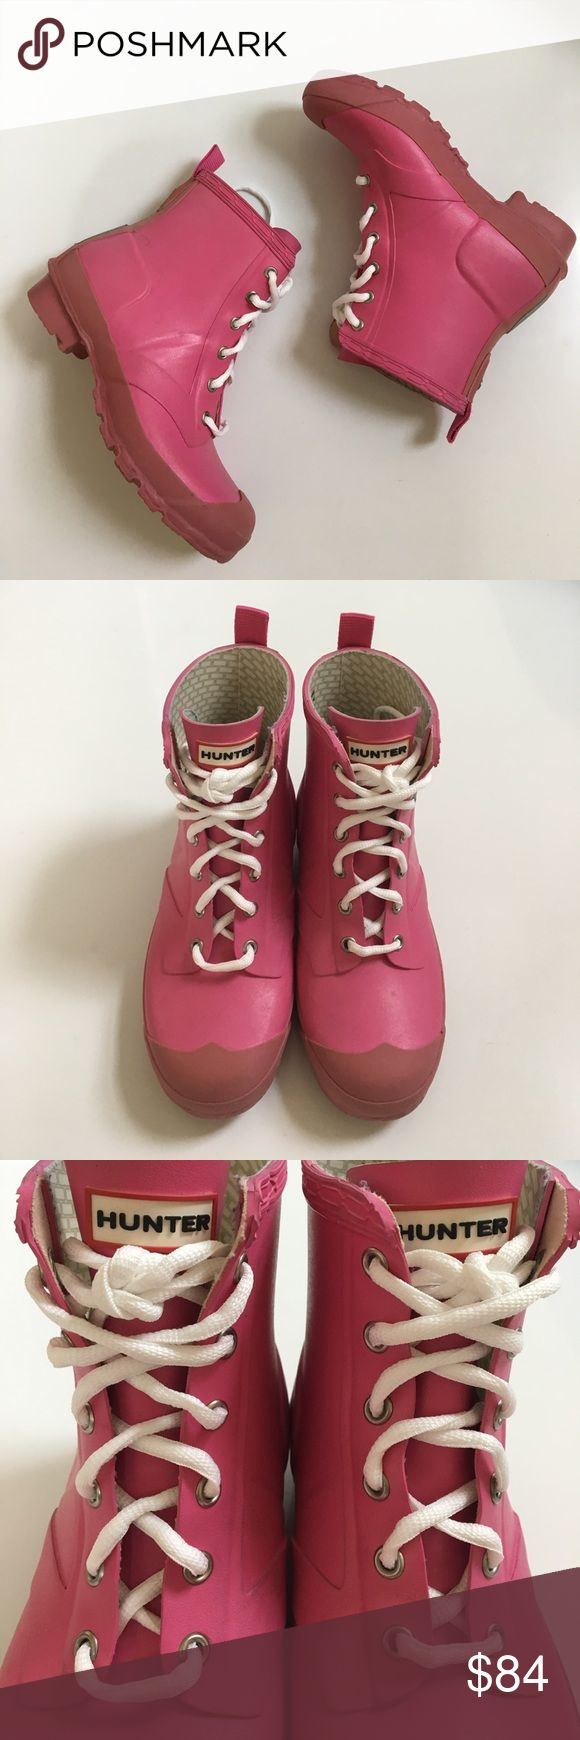 """{ Hunter } lace up short boots Hunter lace up short boots. Pink with white laces (these laces were not original laces, approx 1"""" heel height 6"""" height of boot (including heel), previously worn a few times has some minor wear to it including a few blackish marks, scuffs, little dirty but may be able to clean off with a good clean. These are so adorable and comfy! This is a youth 3M/4F as listed but you can size up to 2 sizes to conversion for women's sizing per Hunter guides. Hunter Boots…"""